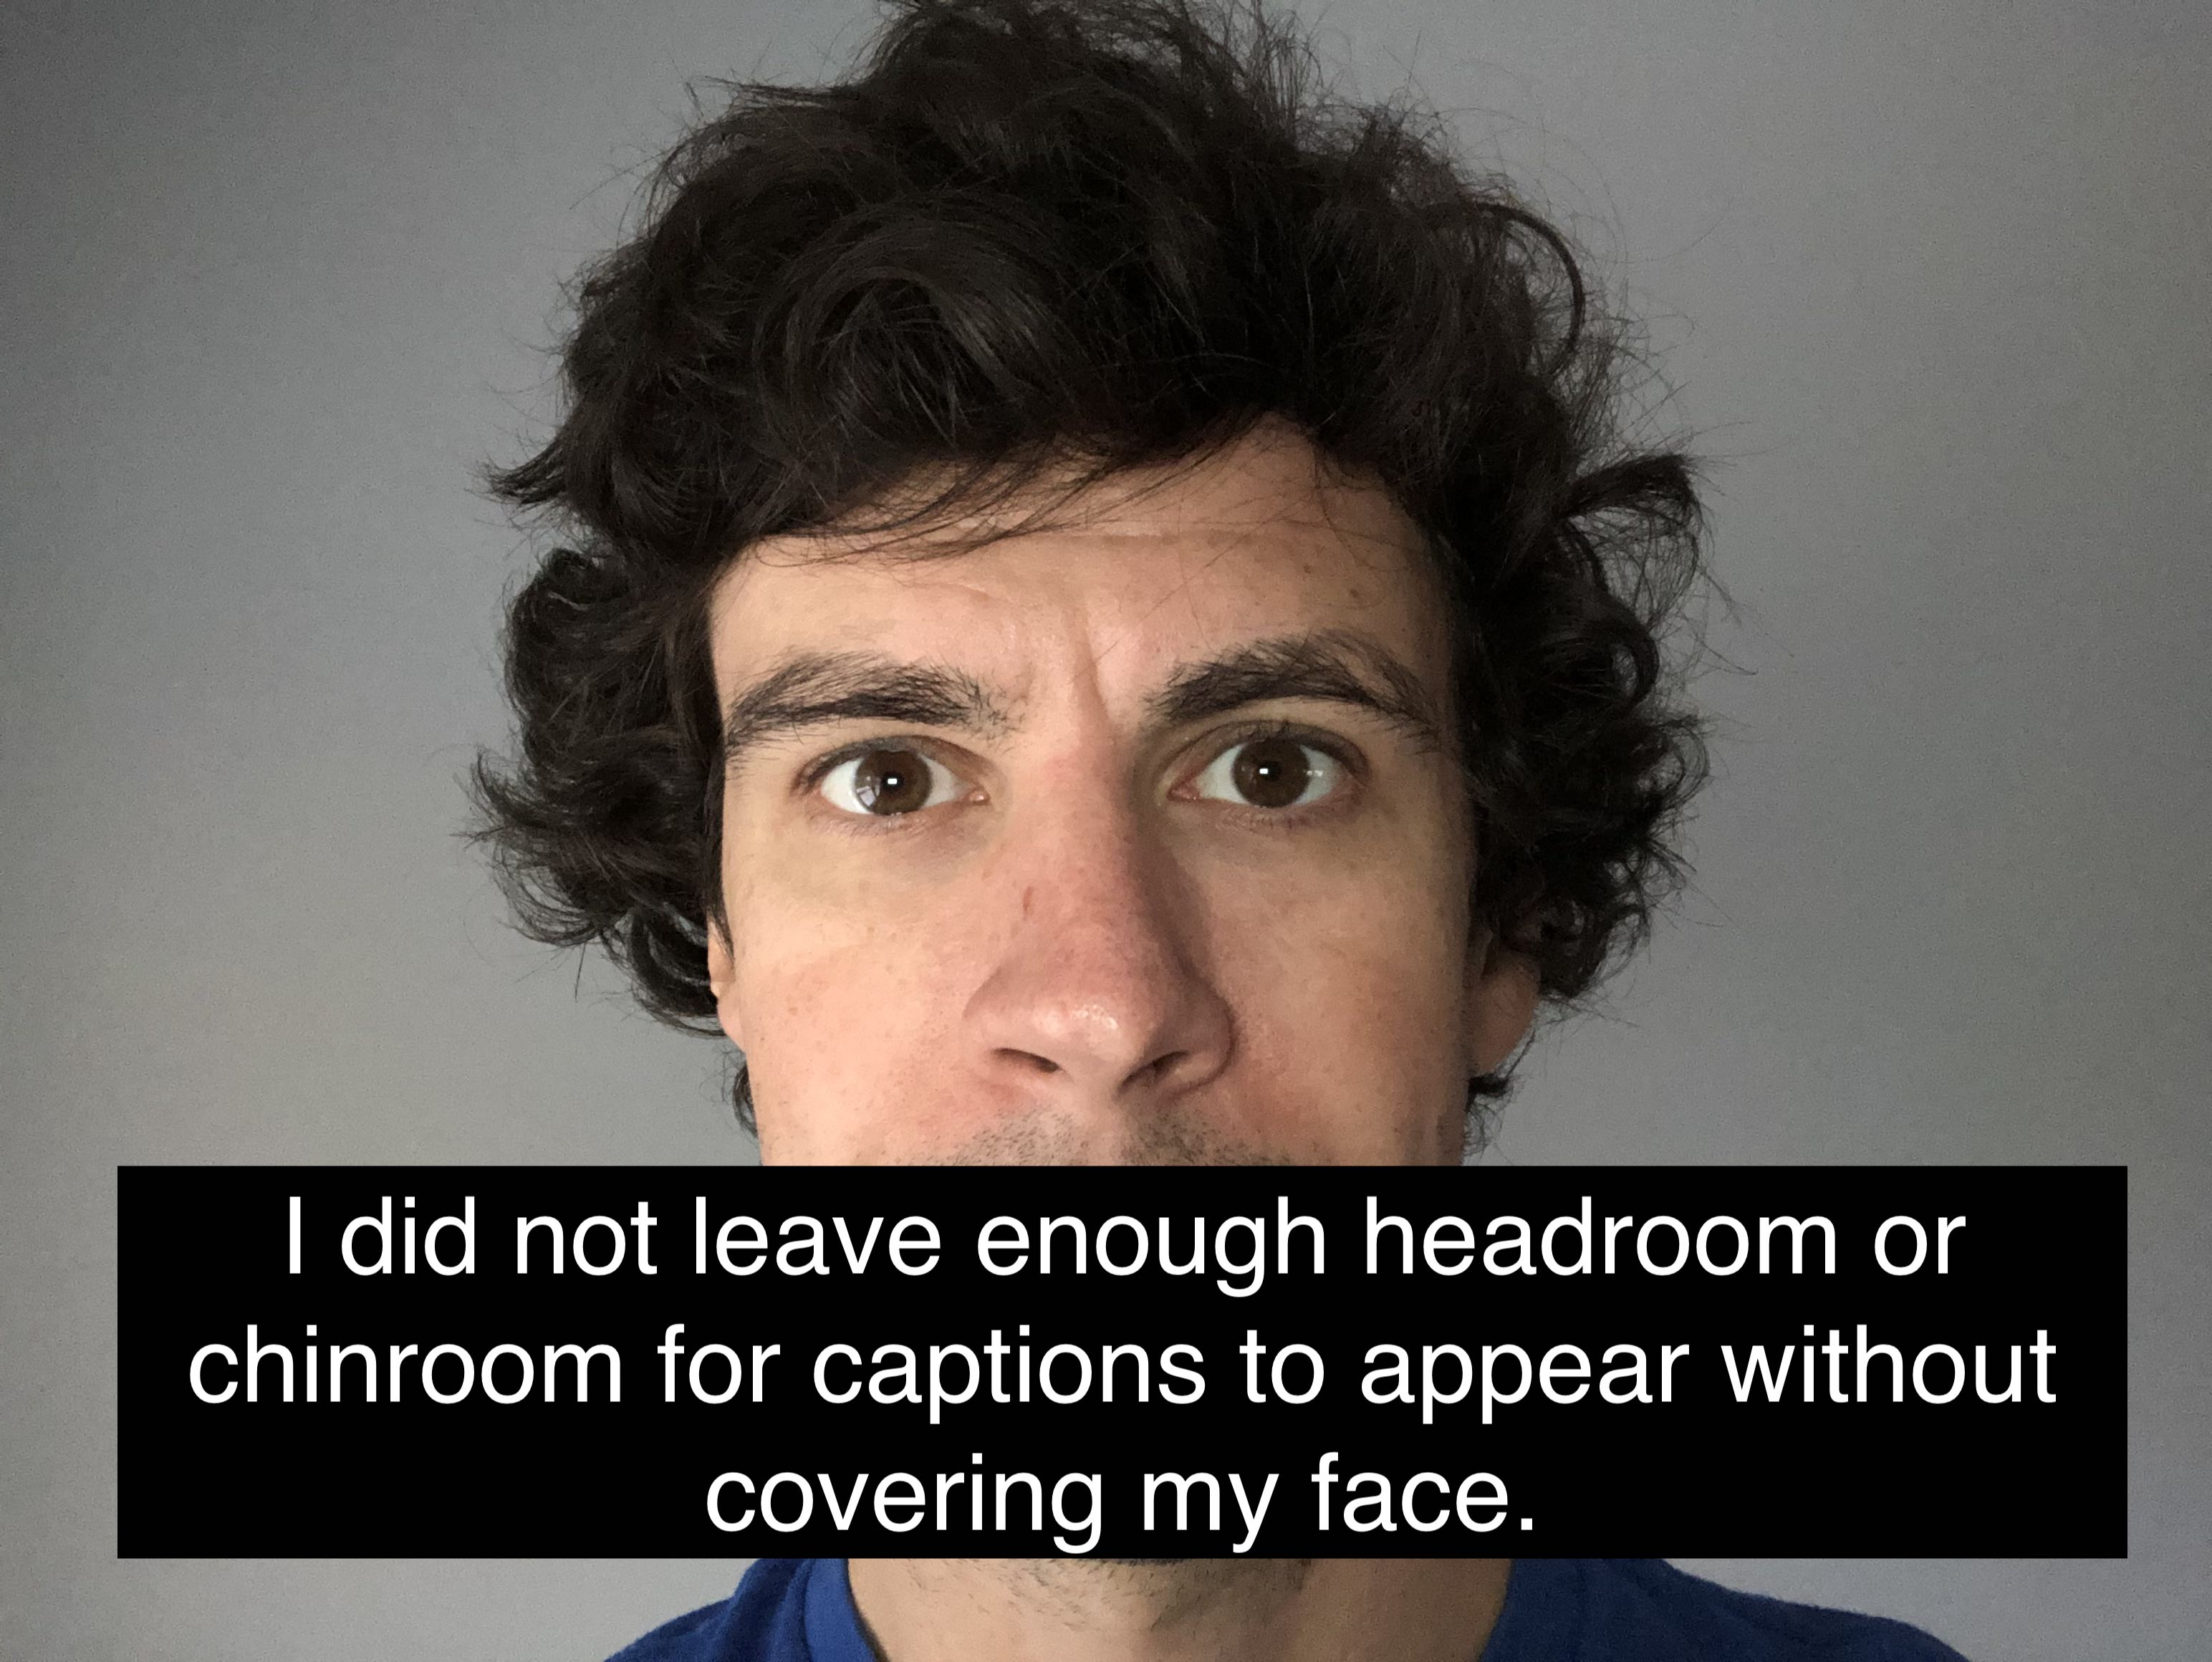 Photo of presenter in video where captions are covering lower part of subject's face.